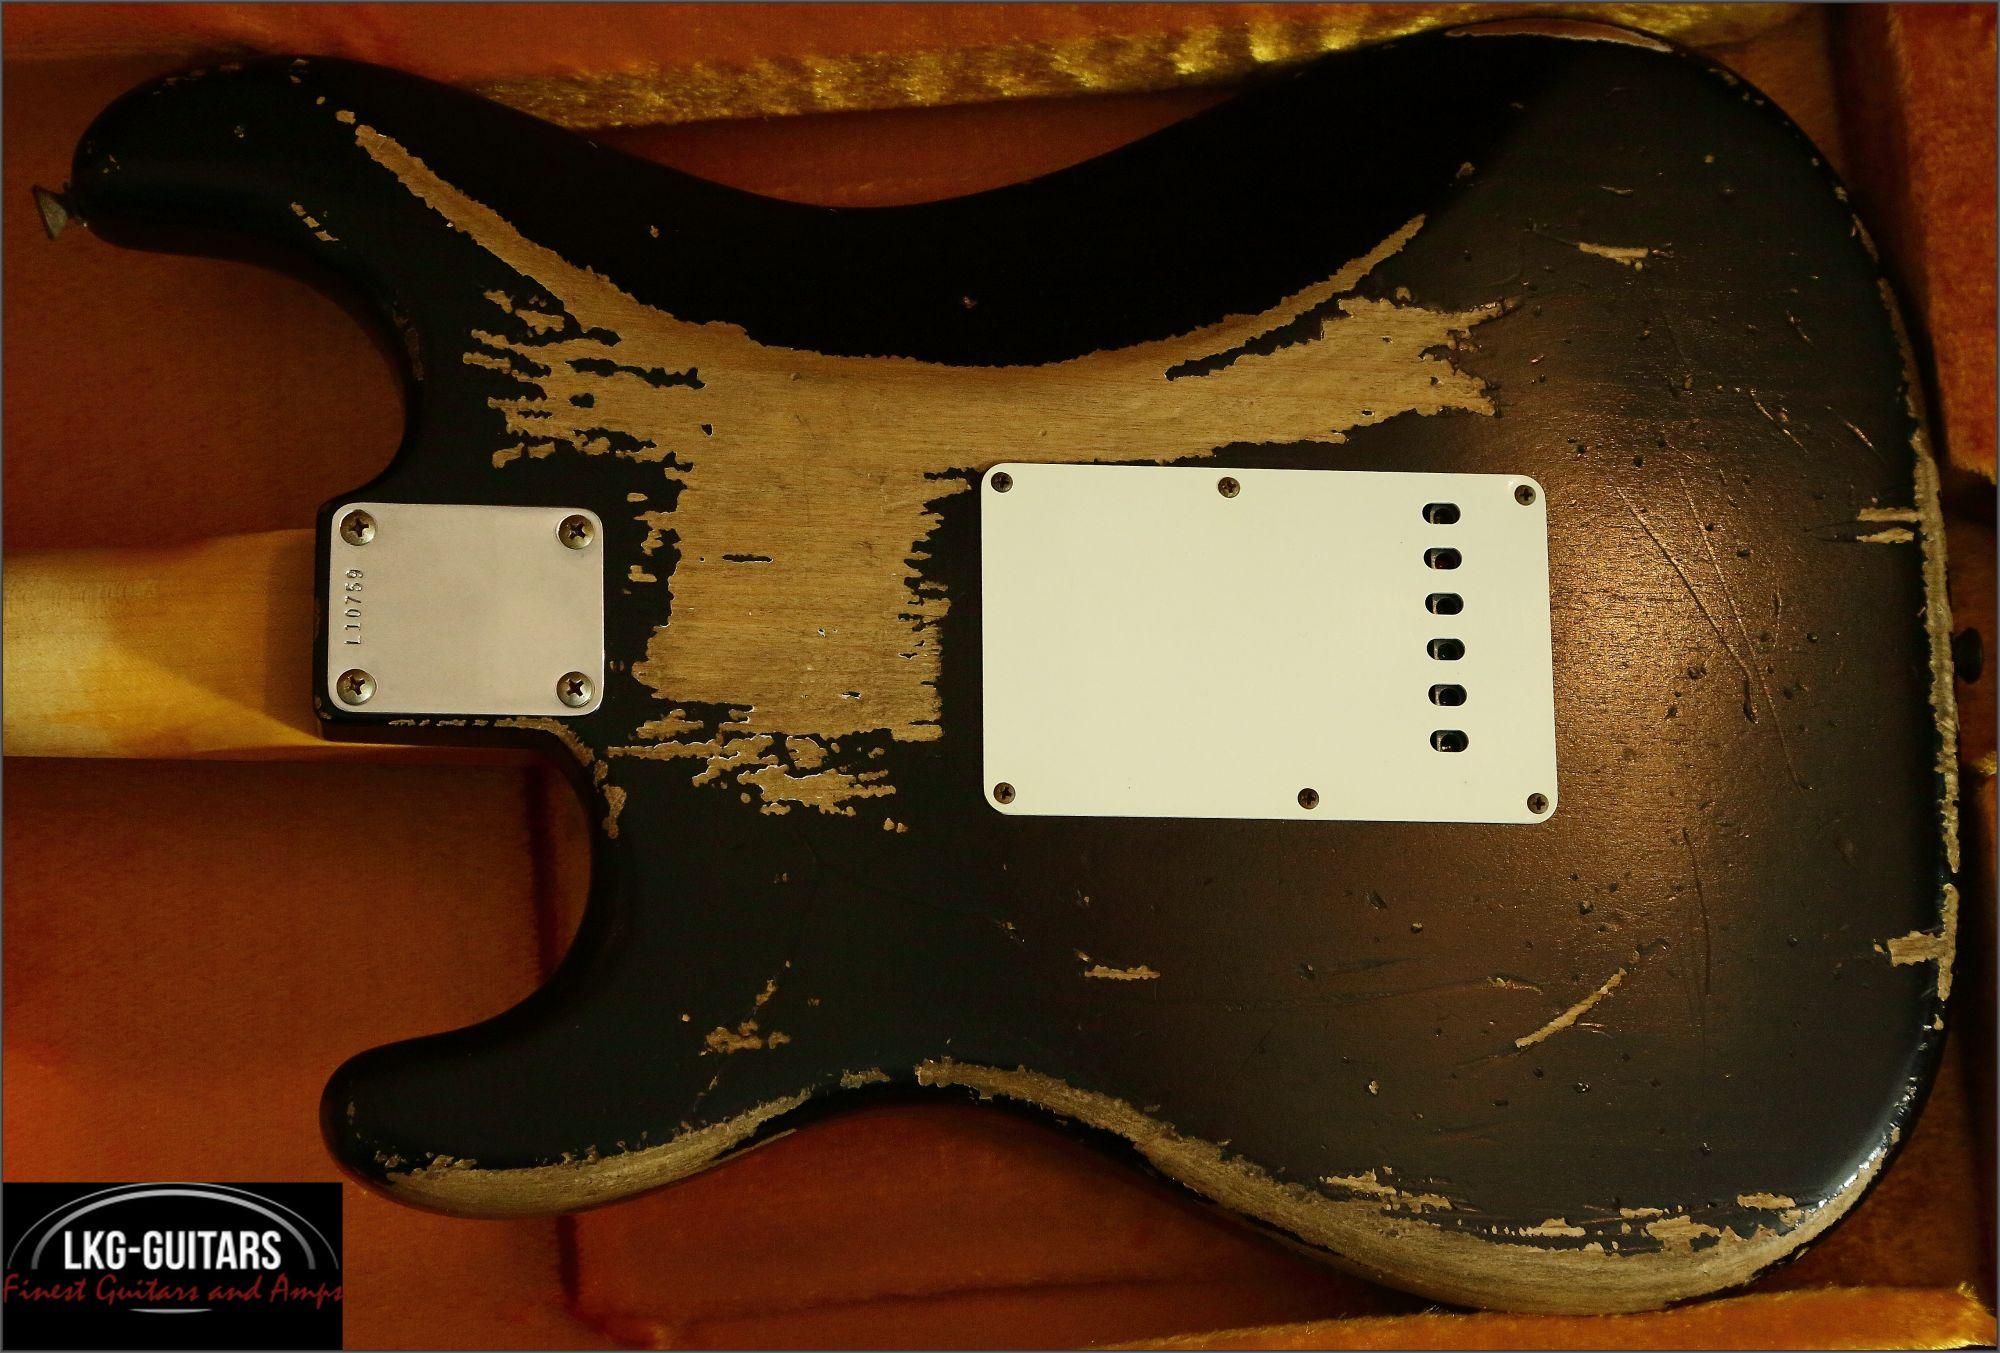 Fuse moreover Shielded Dan Armstrong besides B E A E B E D D together with Pickup Humbucker Coil Select Way also F Bee C A Ab A D D Aa. on strat super switch wiring